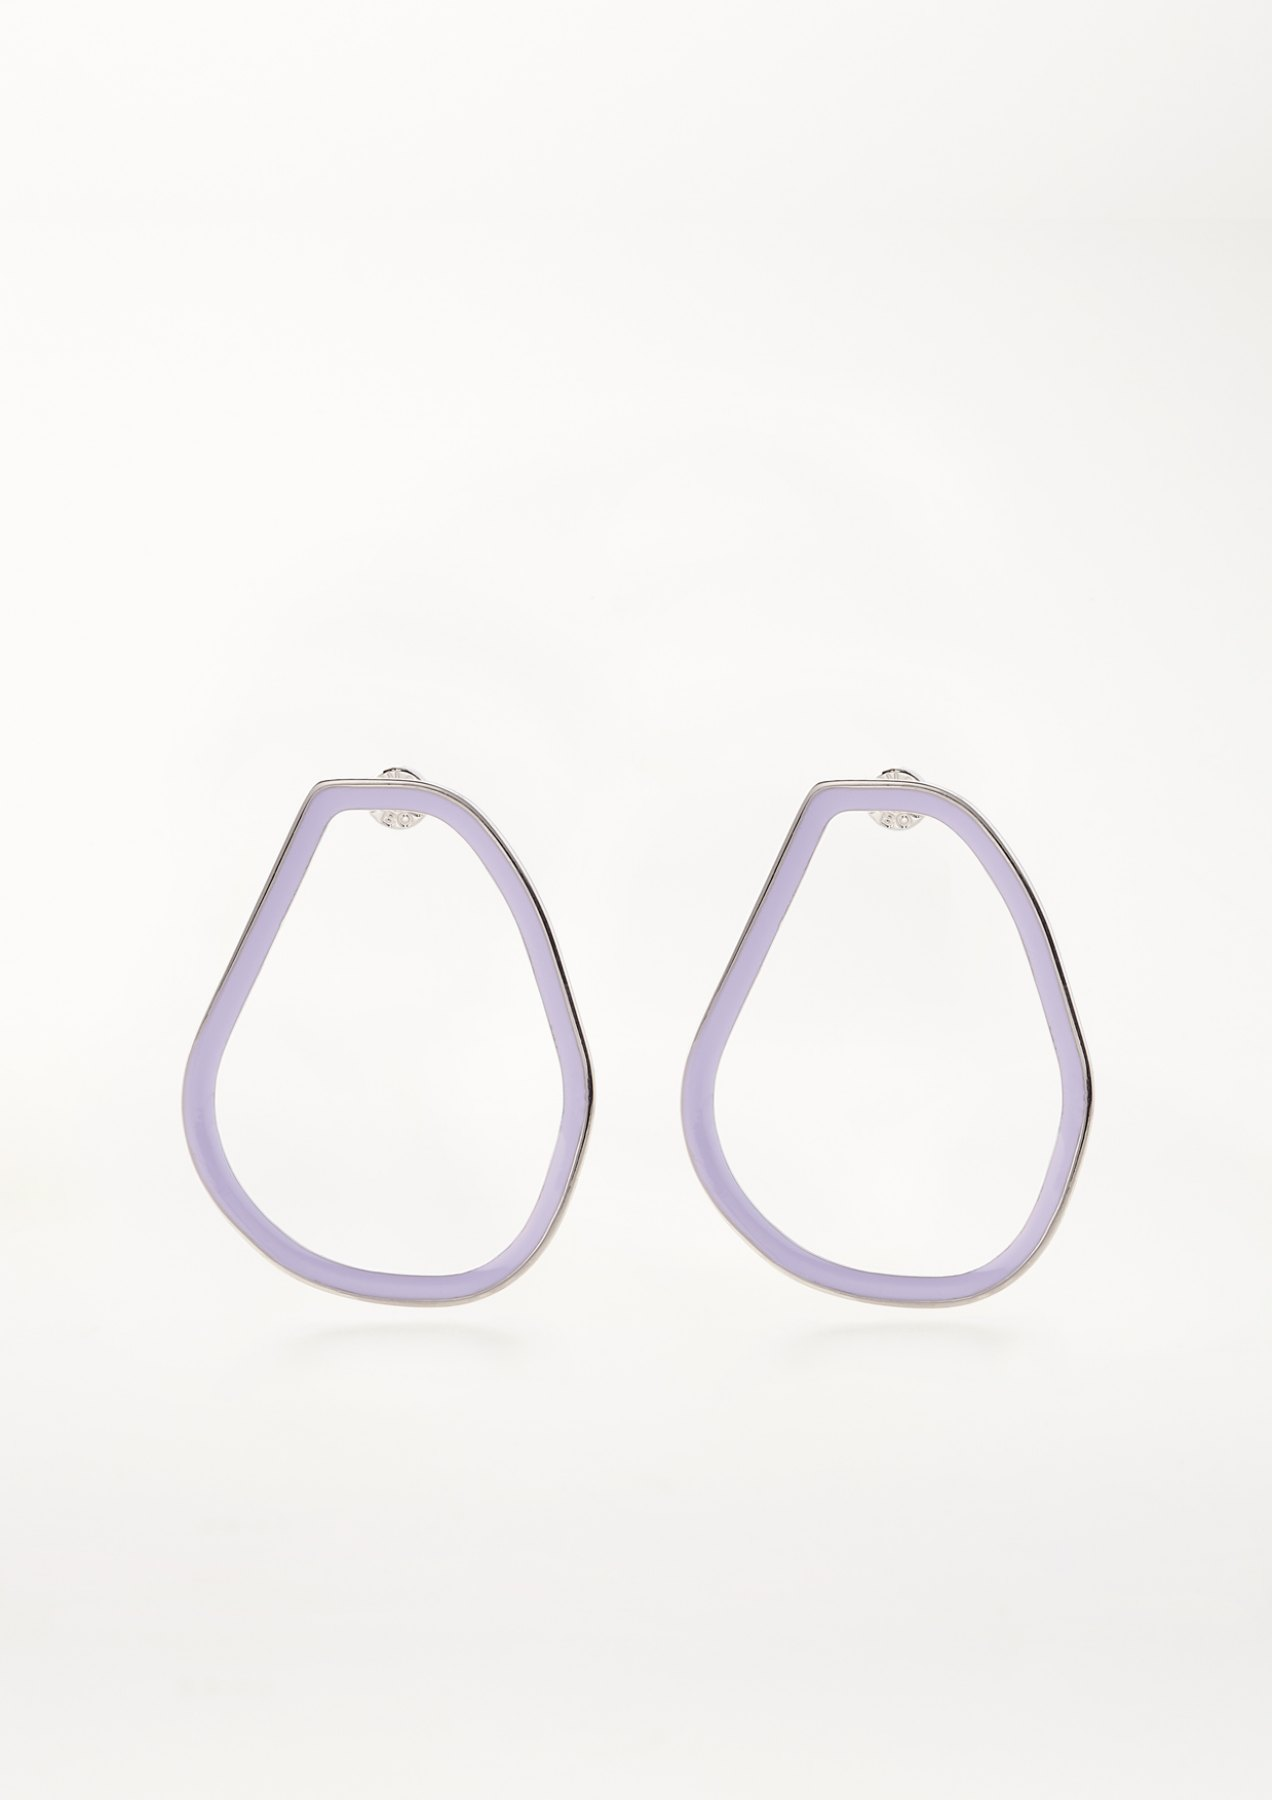 xenia bous jewellery coloured stone 04 earrings flieder